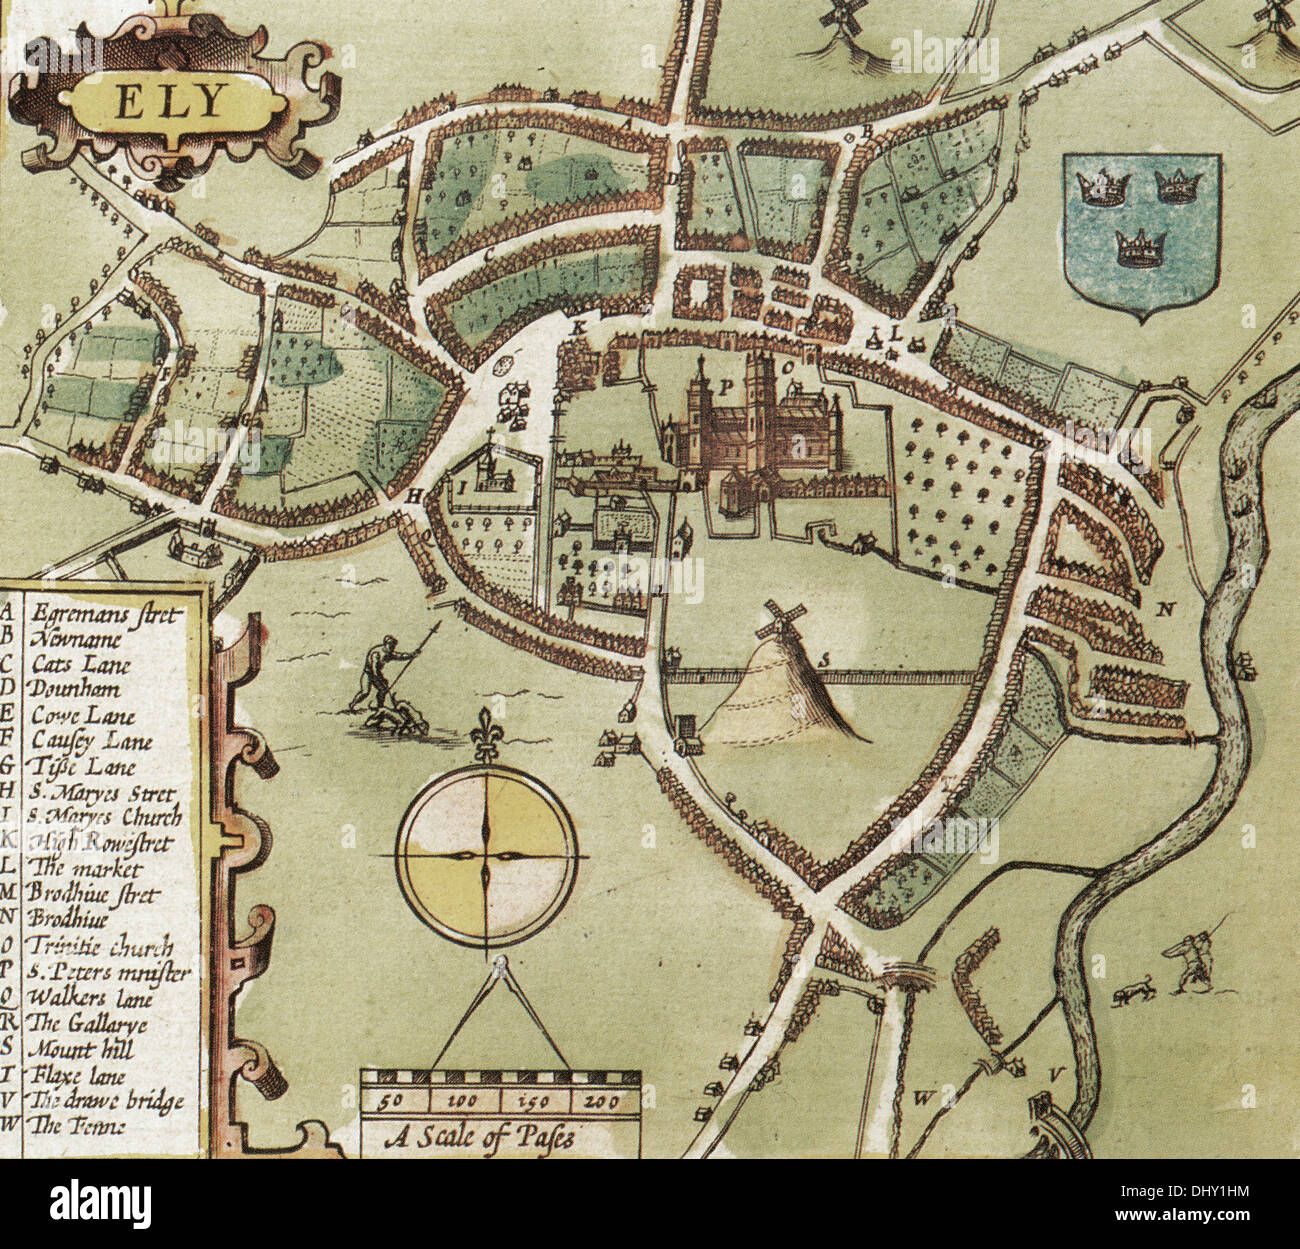 Map Of Ely Old Map Ely England John Stock Photos & Old Map Ely England John  Map Of Ely